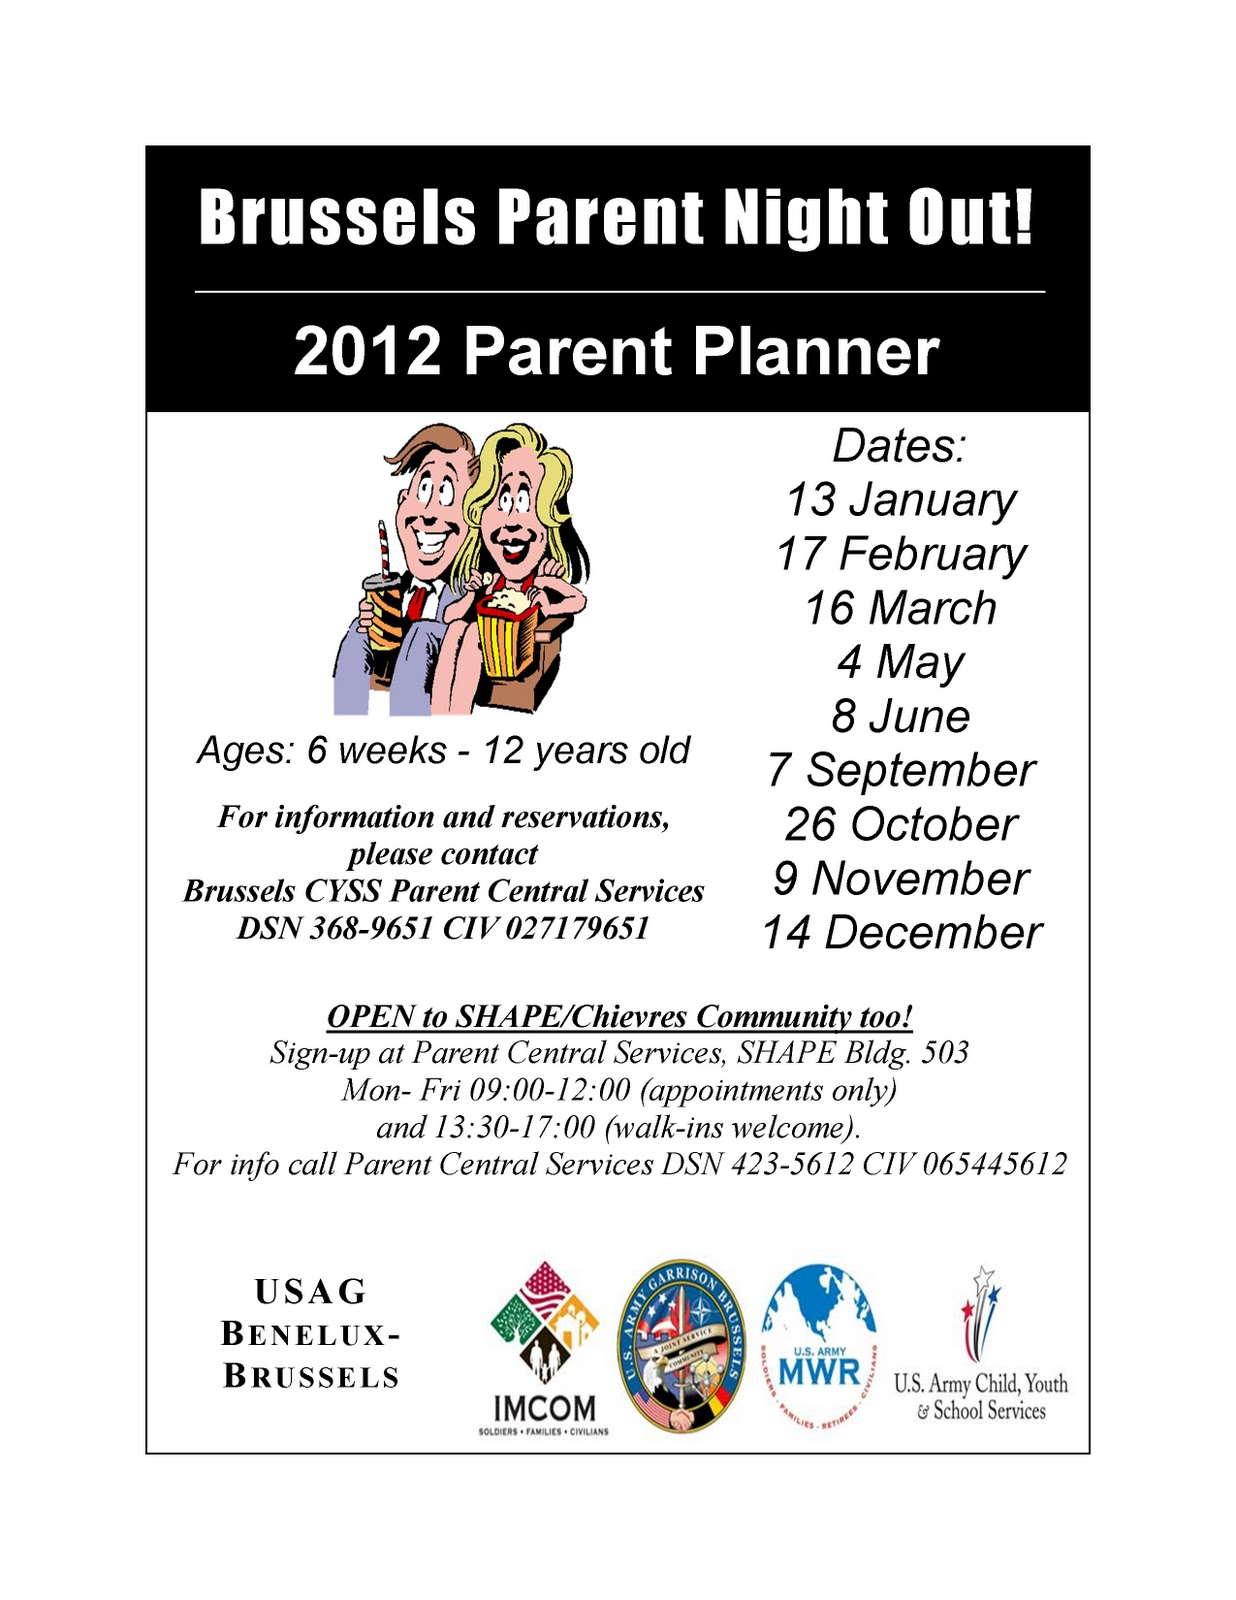 Parents night out clip art hot girls wallpaper for Parent flyer templates